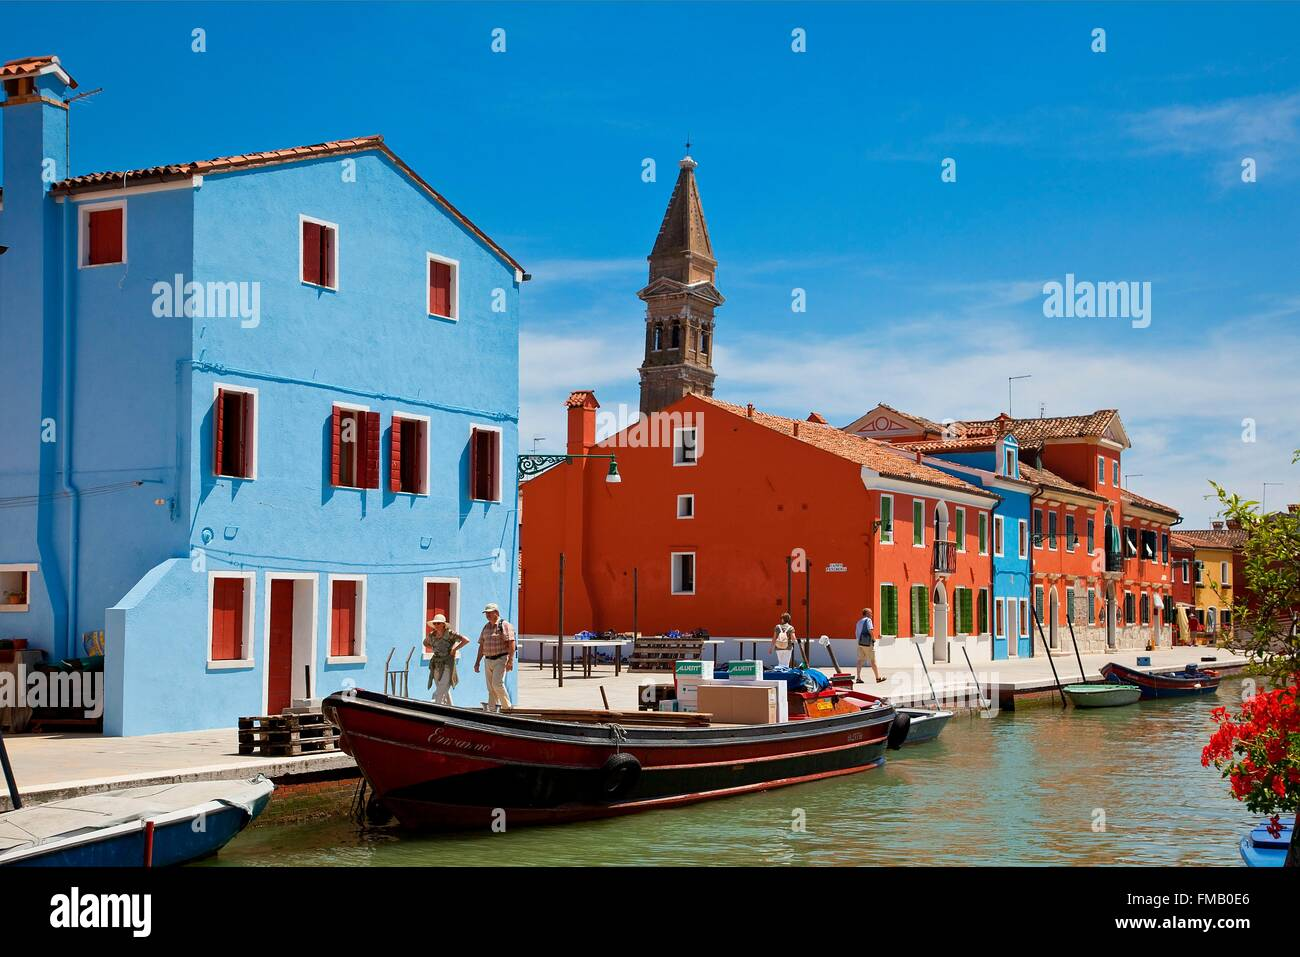 Italy, Veneto, Venice, Colorful Boats and Homes Lining Canal in Burano - Stock Image